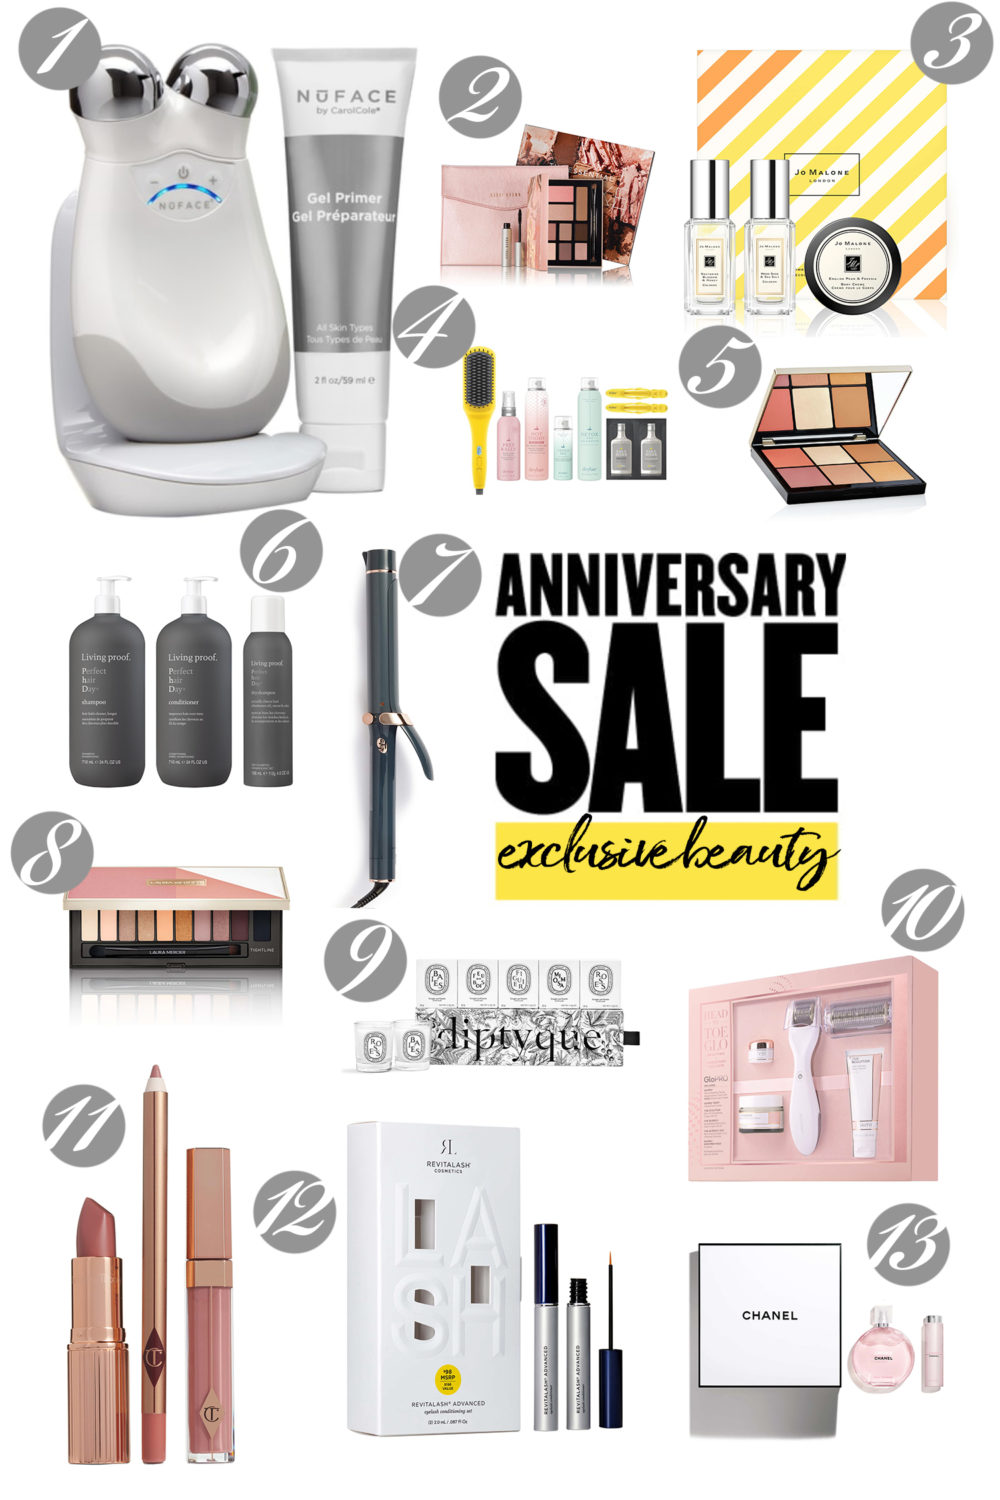 Nordstrom Anniversary Sale | Nordstrom Anniversary Sale Beauty Finds